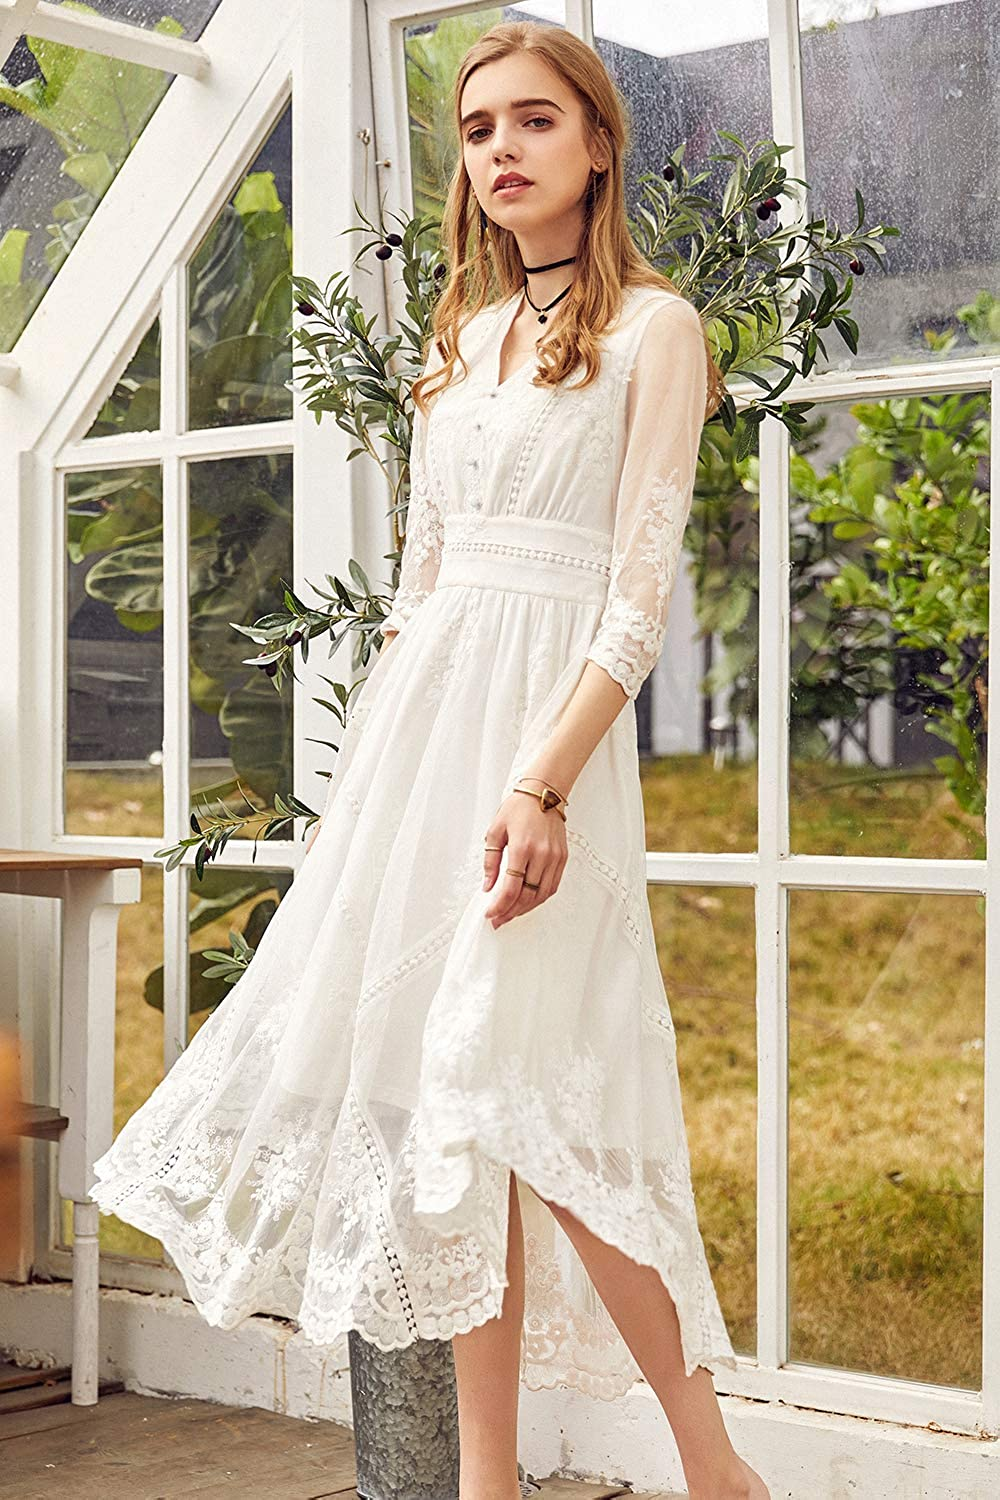 1920s Wedding Dresses- Art Deco Wedding Dress, Gatsby Wedding Dress Artka Womens Lace Embroidered Maxi White Sheer Wedding Dress $81.00 AT vintagedancer.com